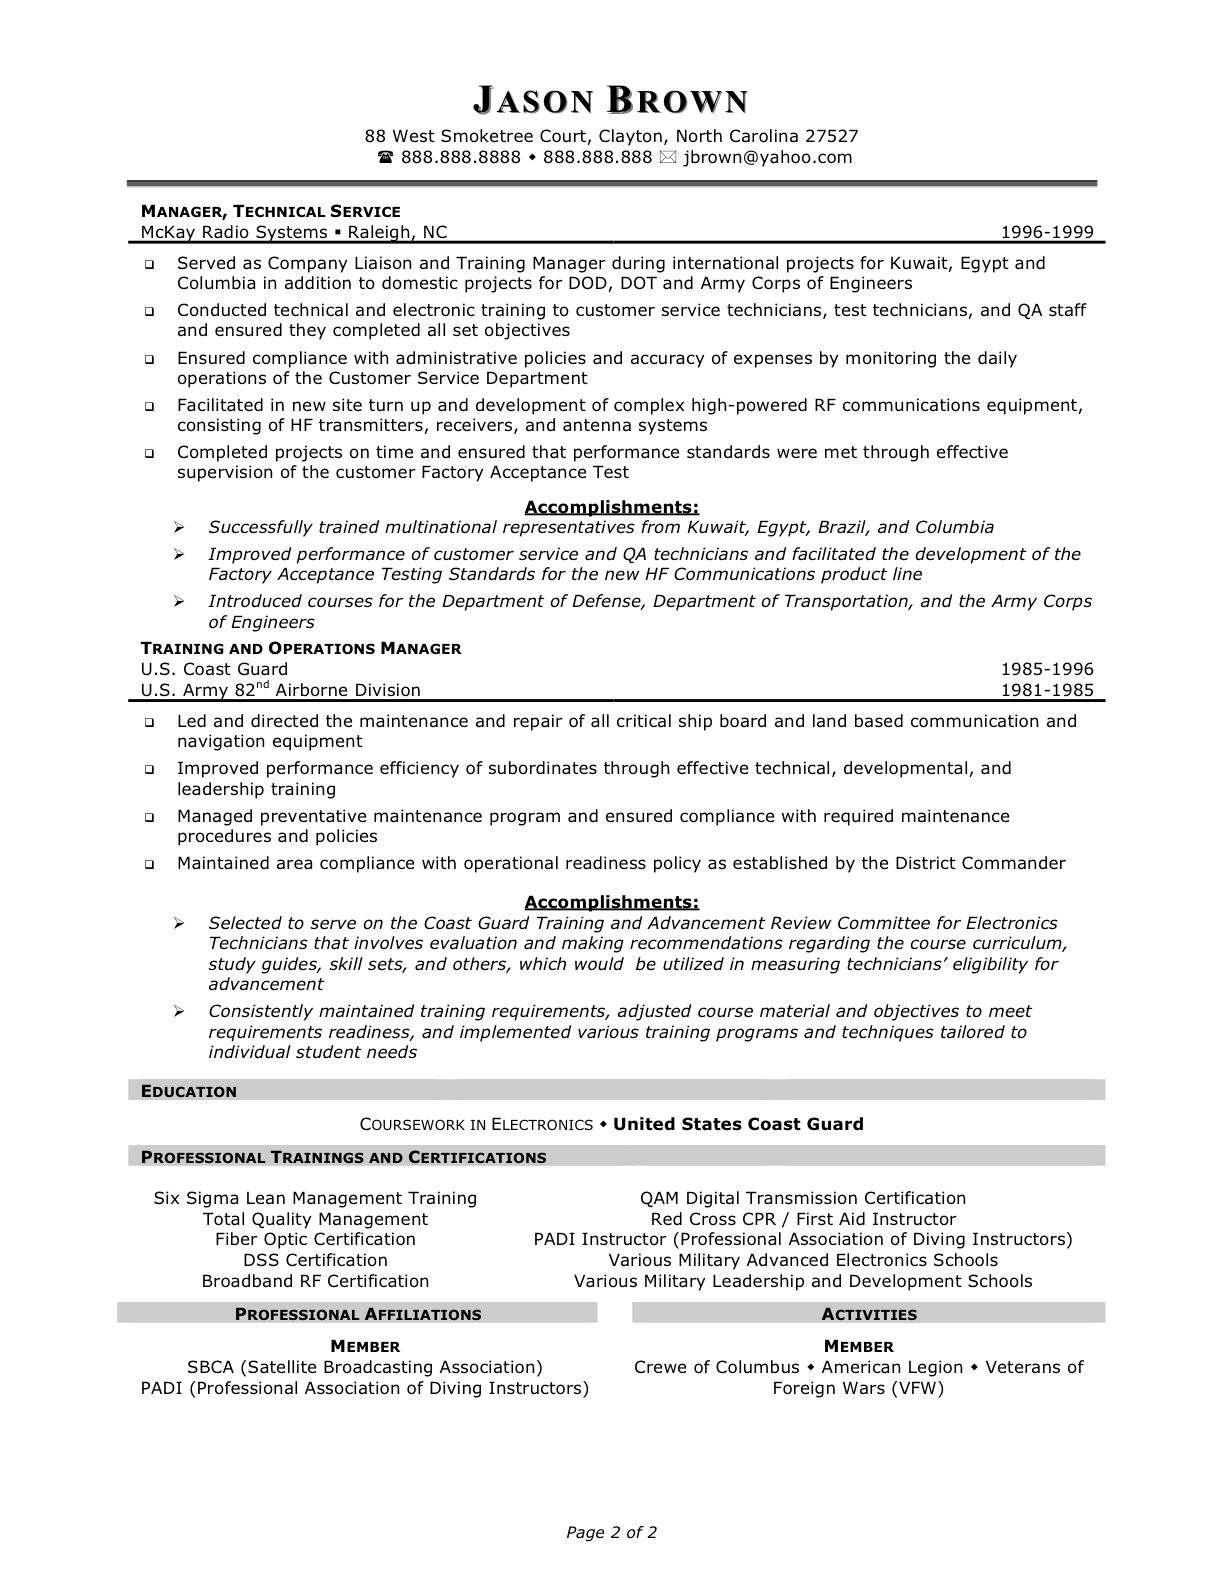 Summary Statement Resume Examples Enterprise Management Trainee Program Resume  Httpwww